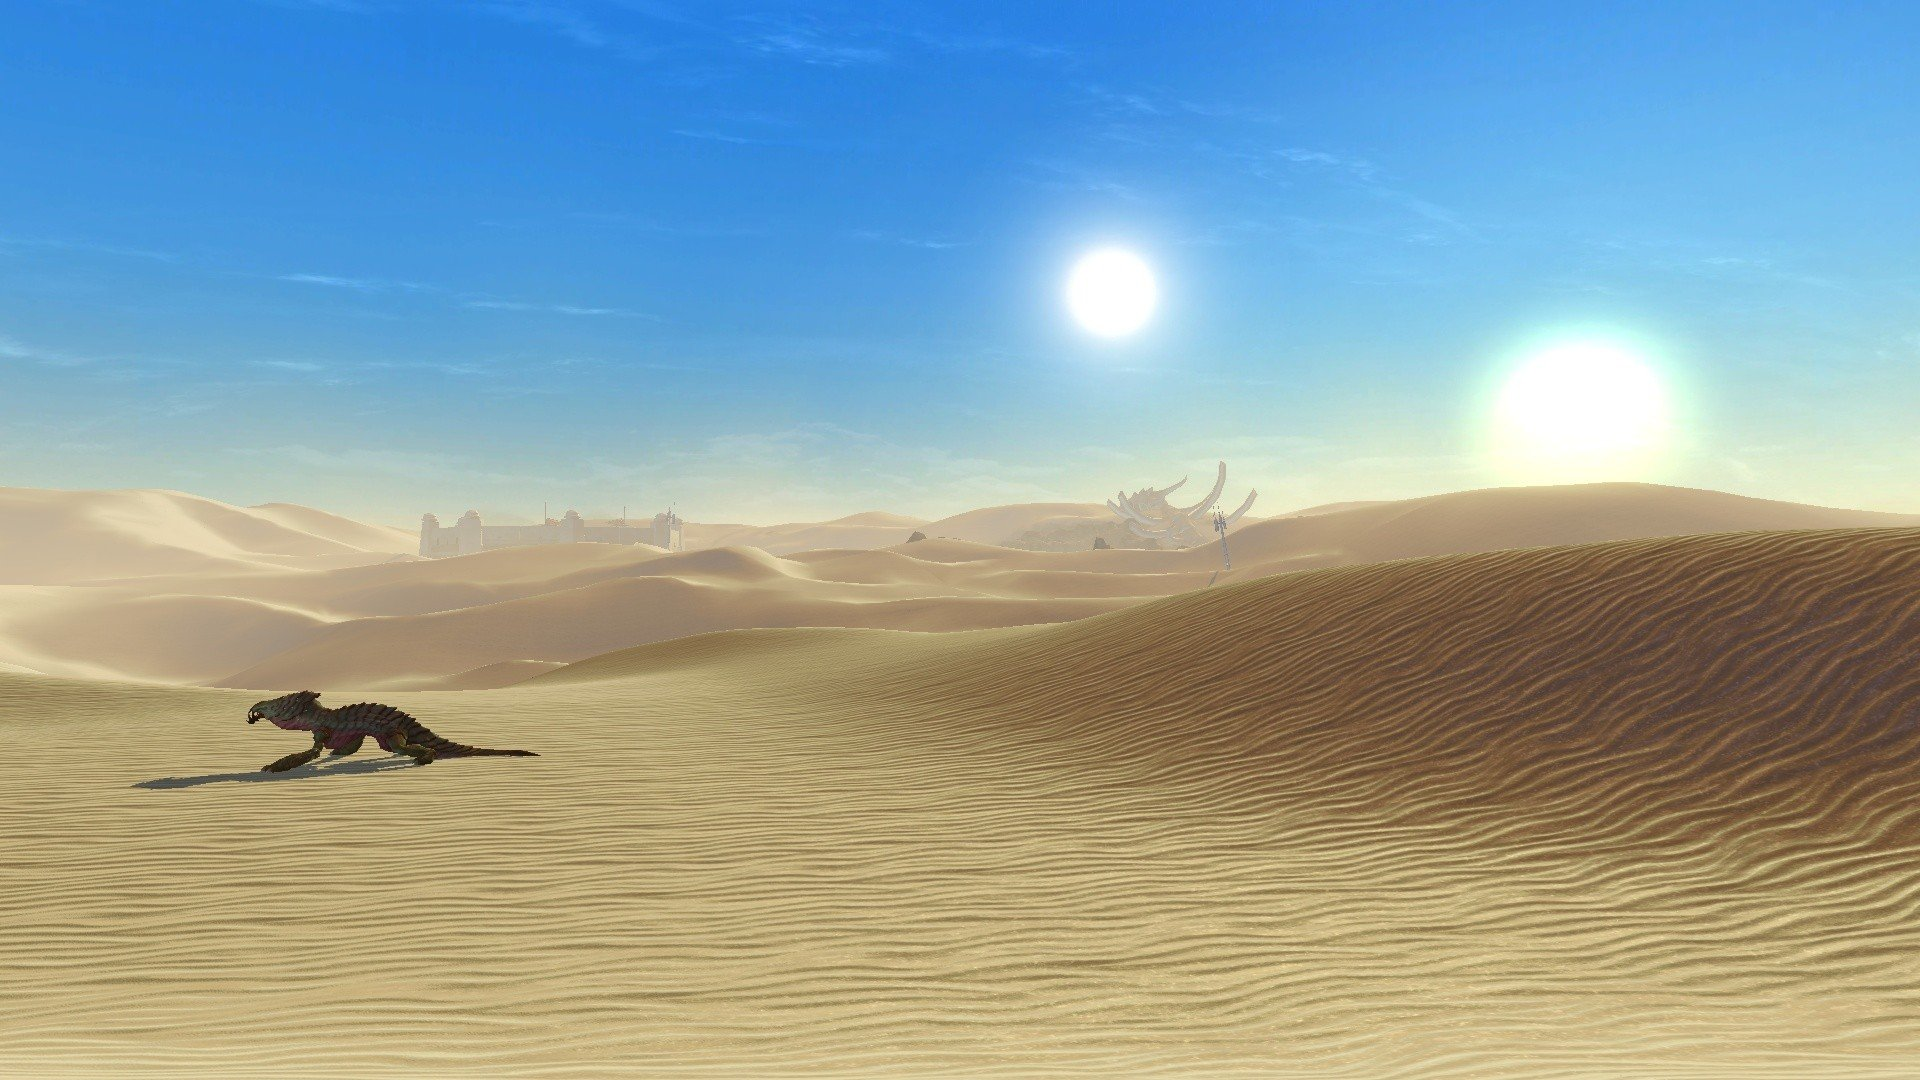 SWTOR Tatooine Star Wars The Old Republic